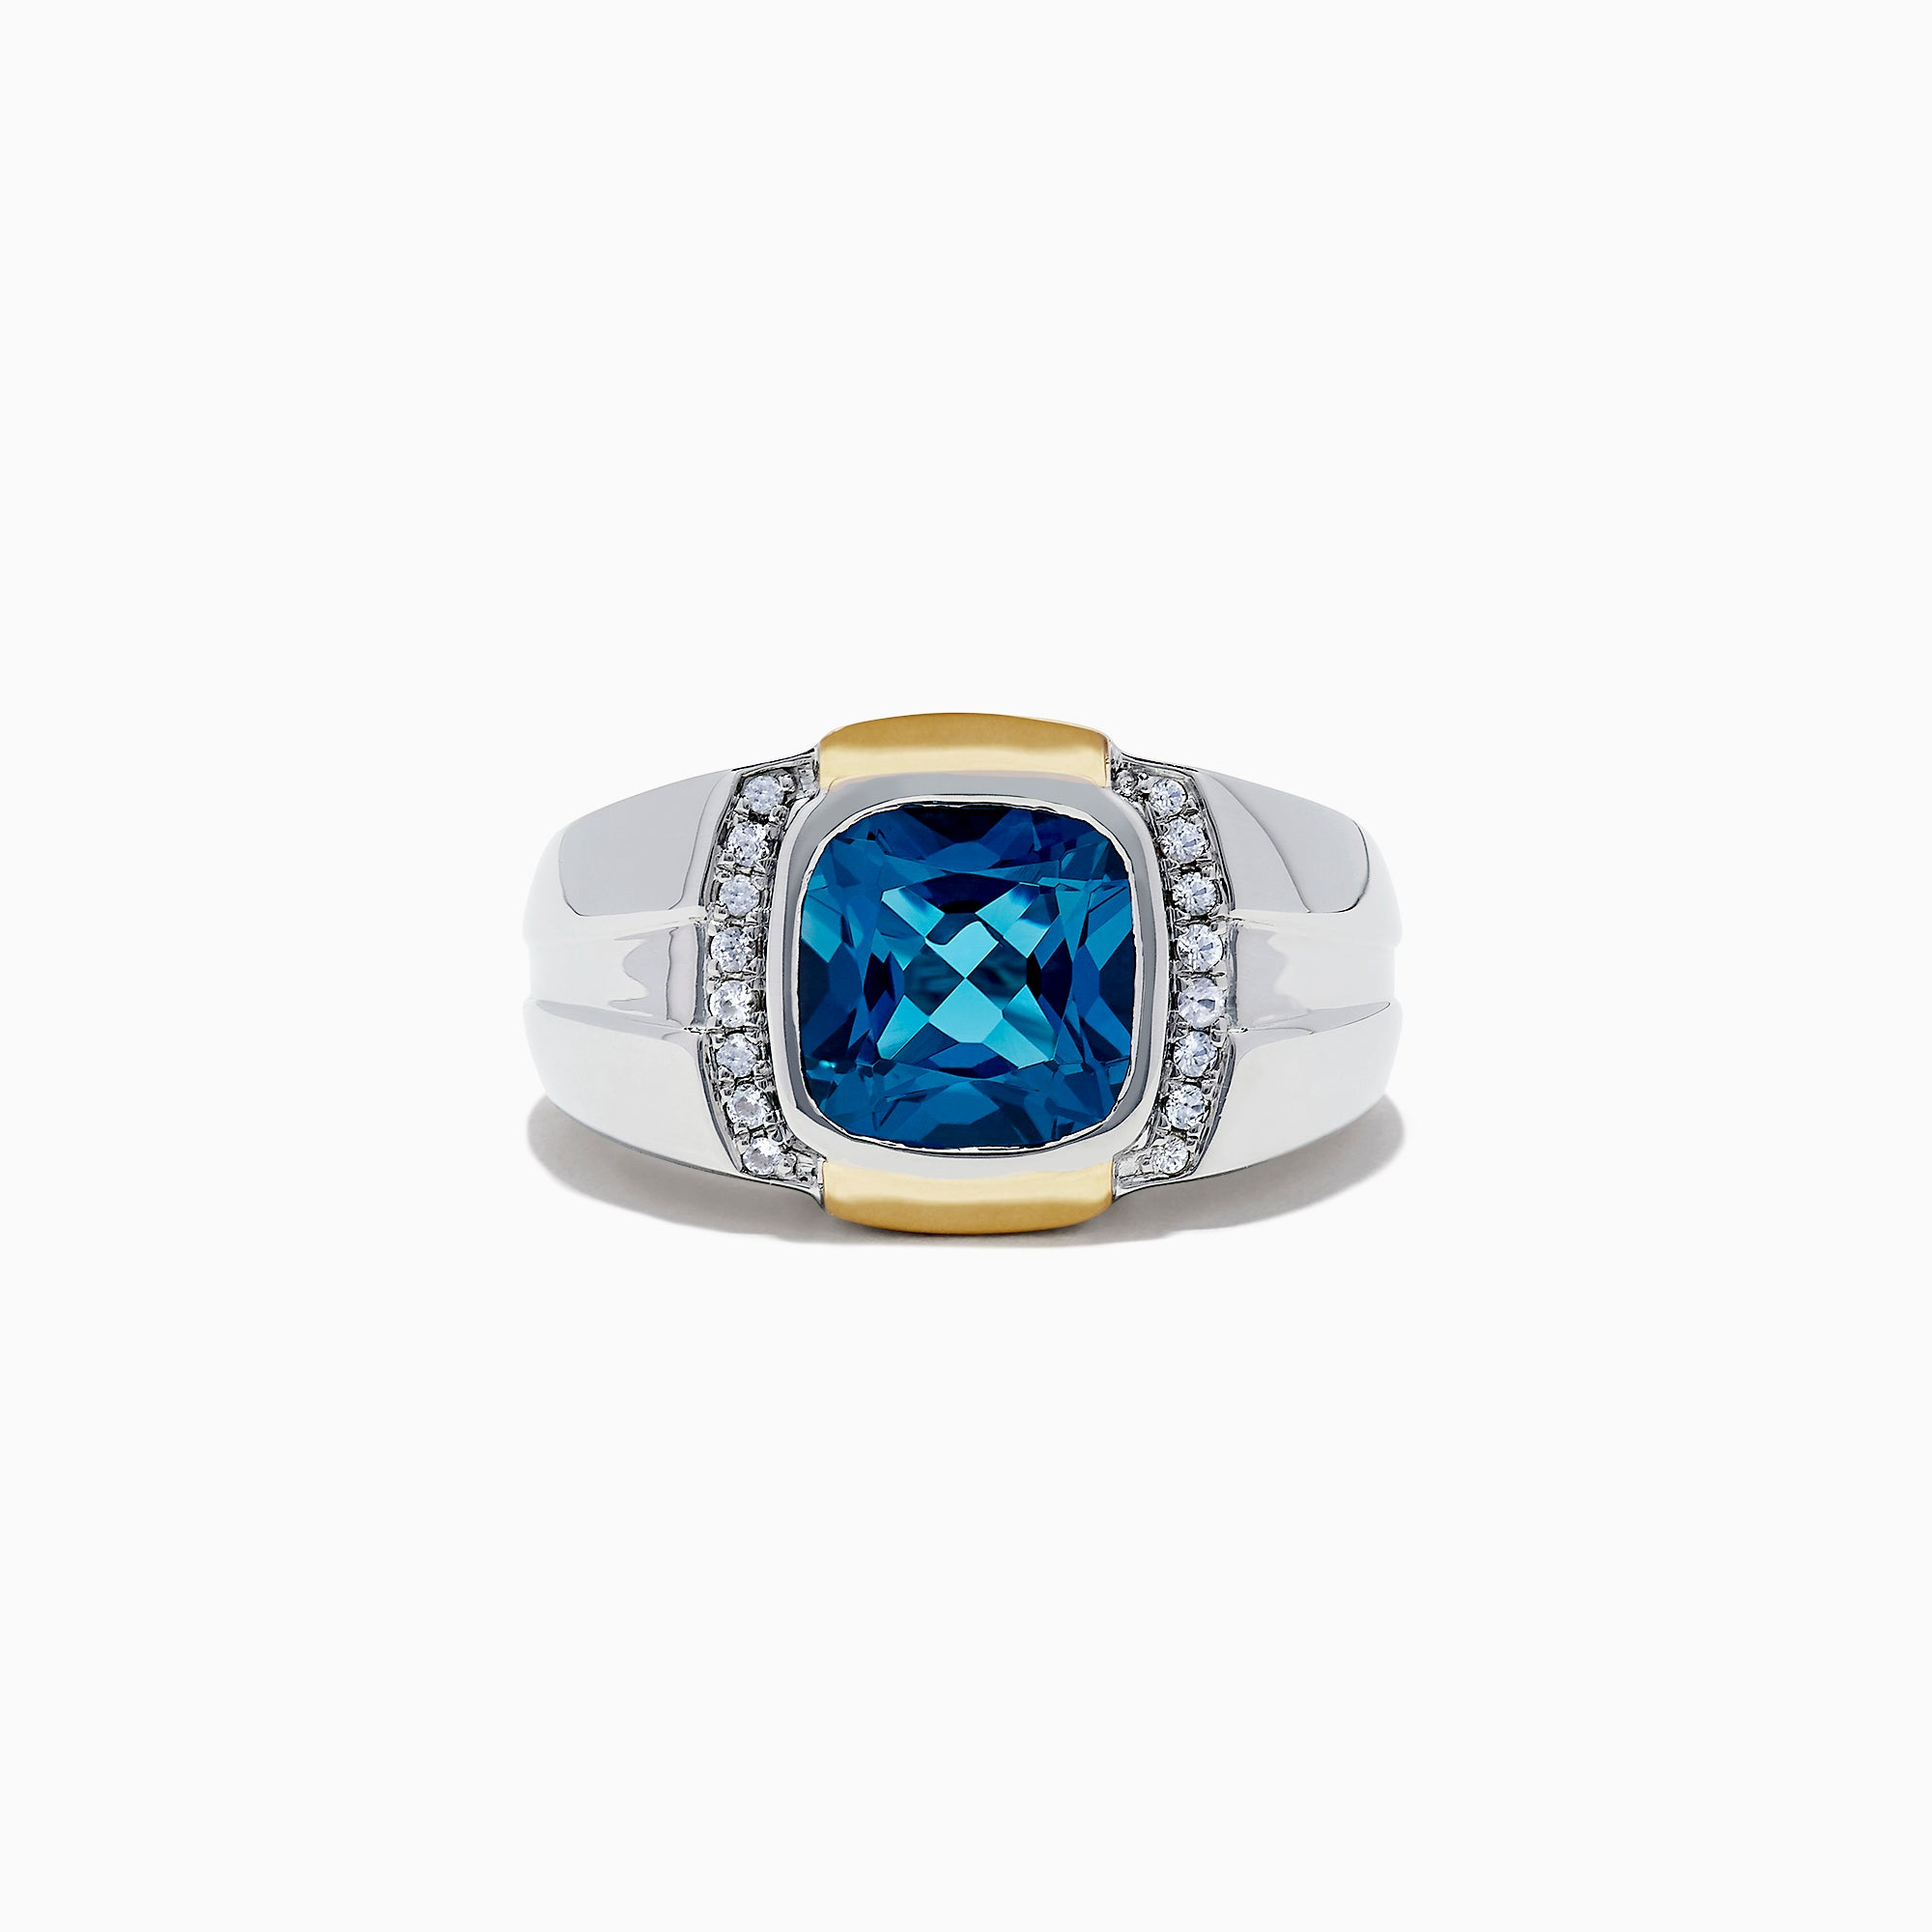 Effy Men's Sterling Silver Blue Topaz and White Sapphire Ring, 5.32 TCW